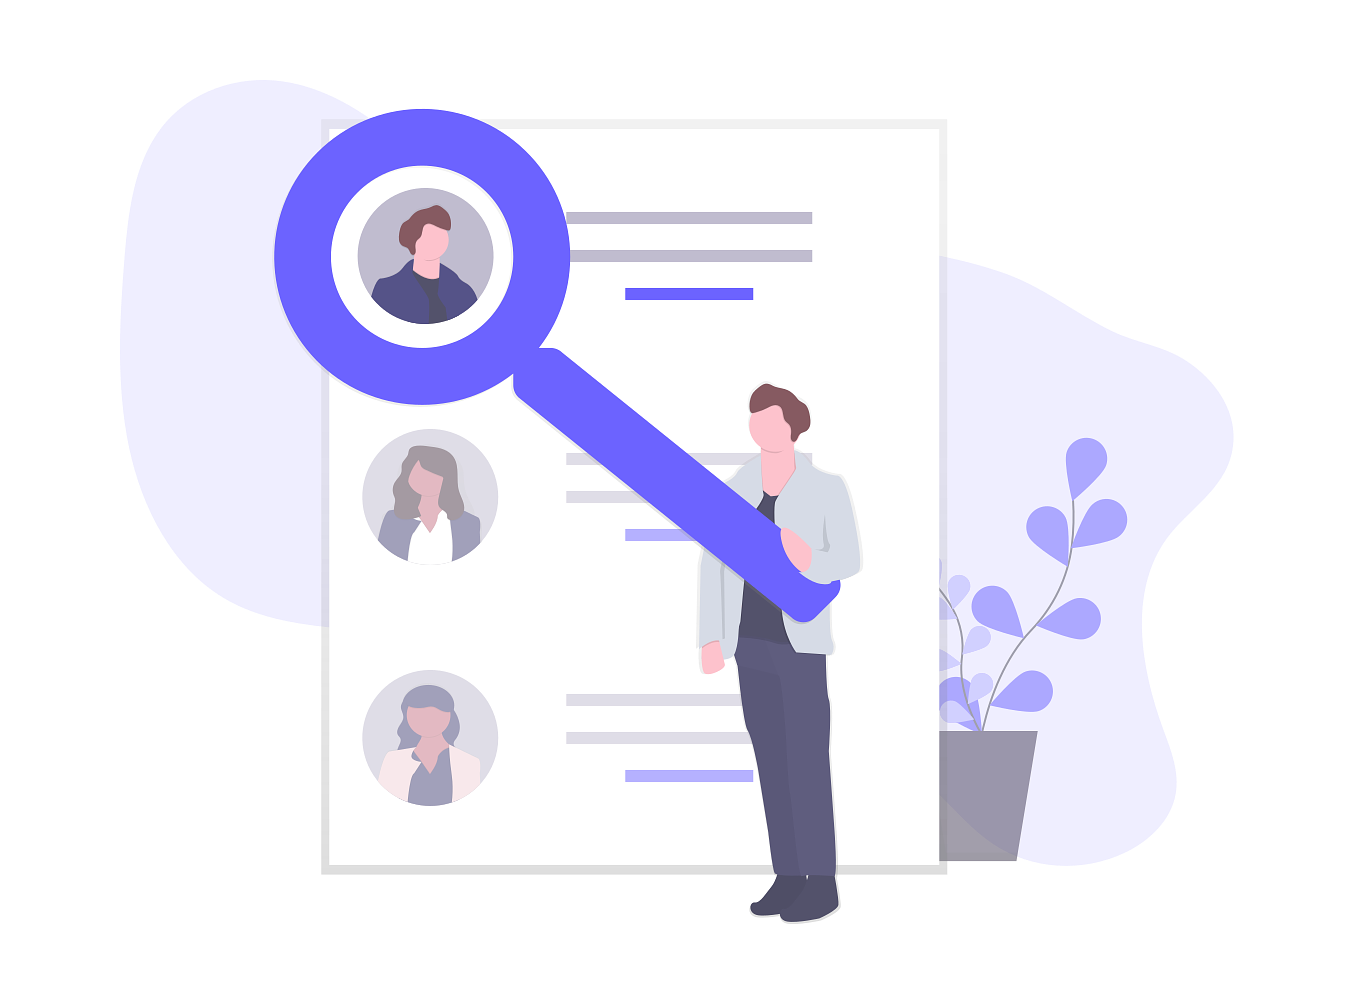 Human Resources (HR) / People Operations (PO) OKR examples